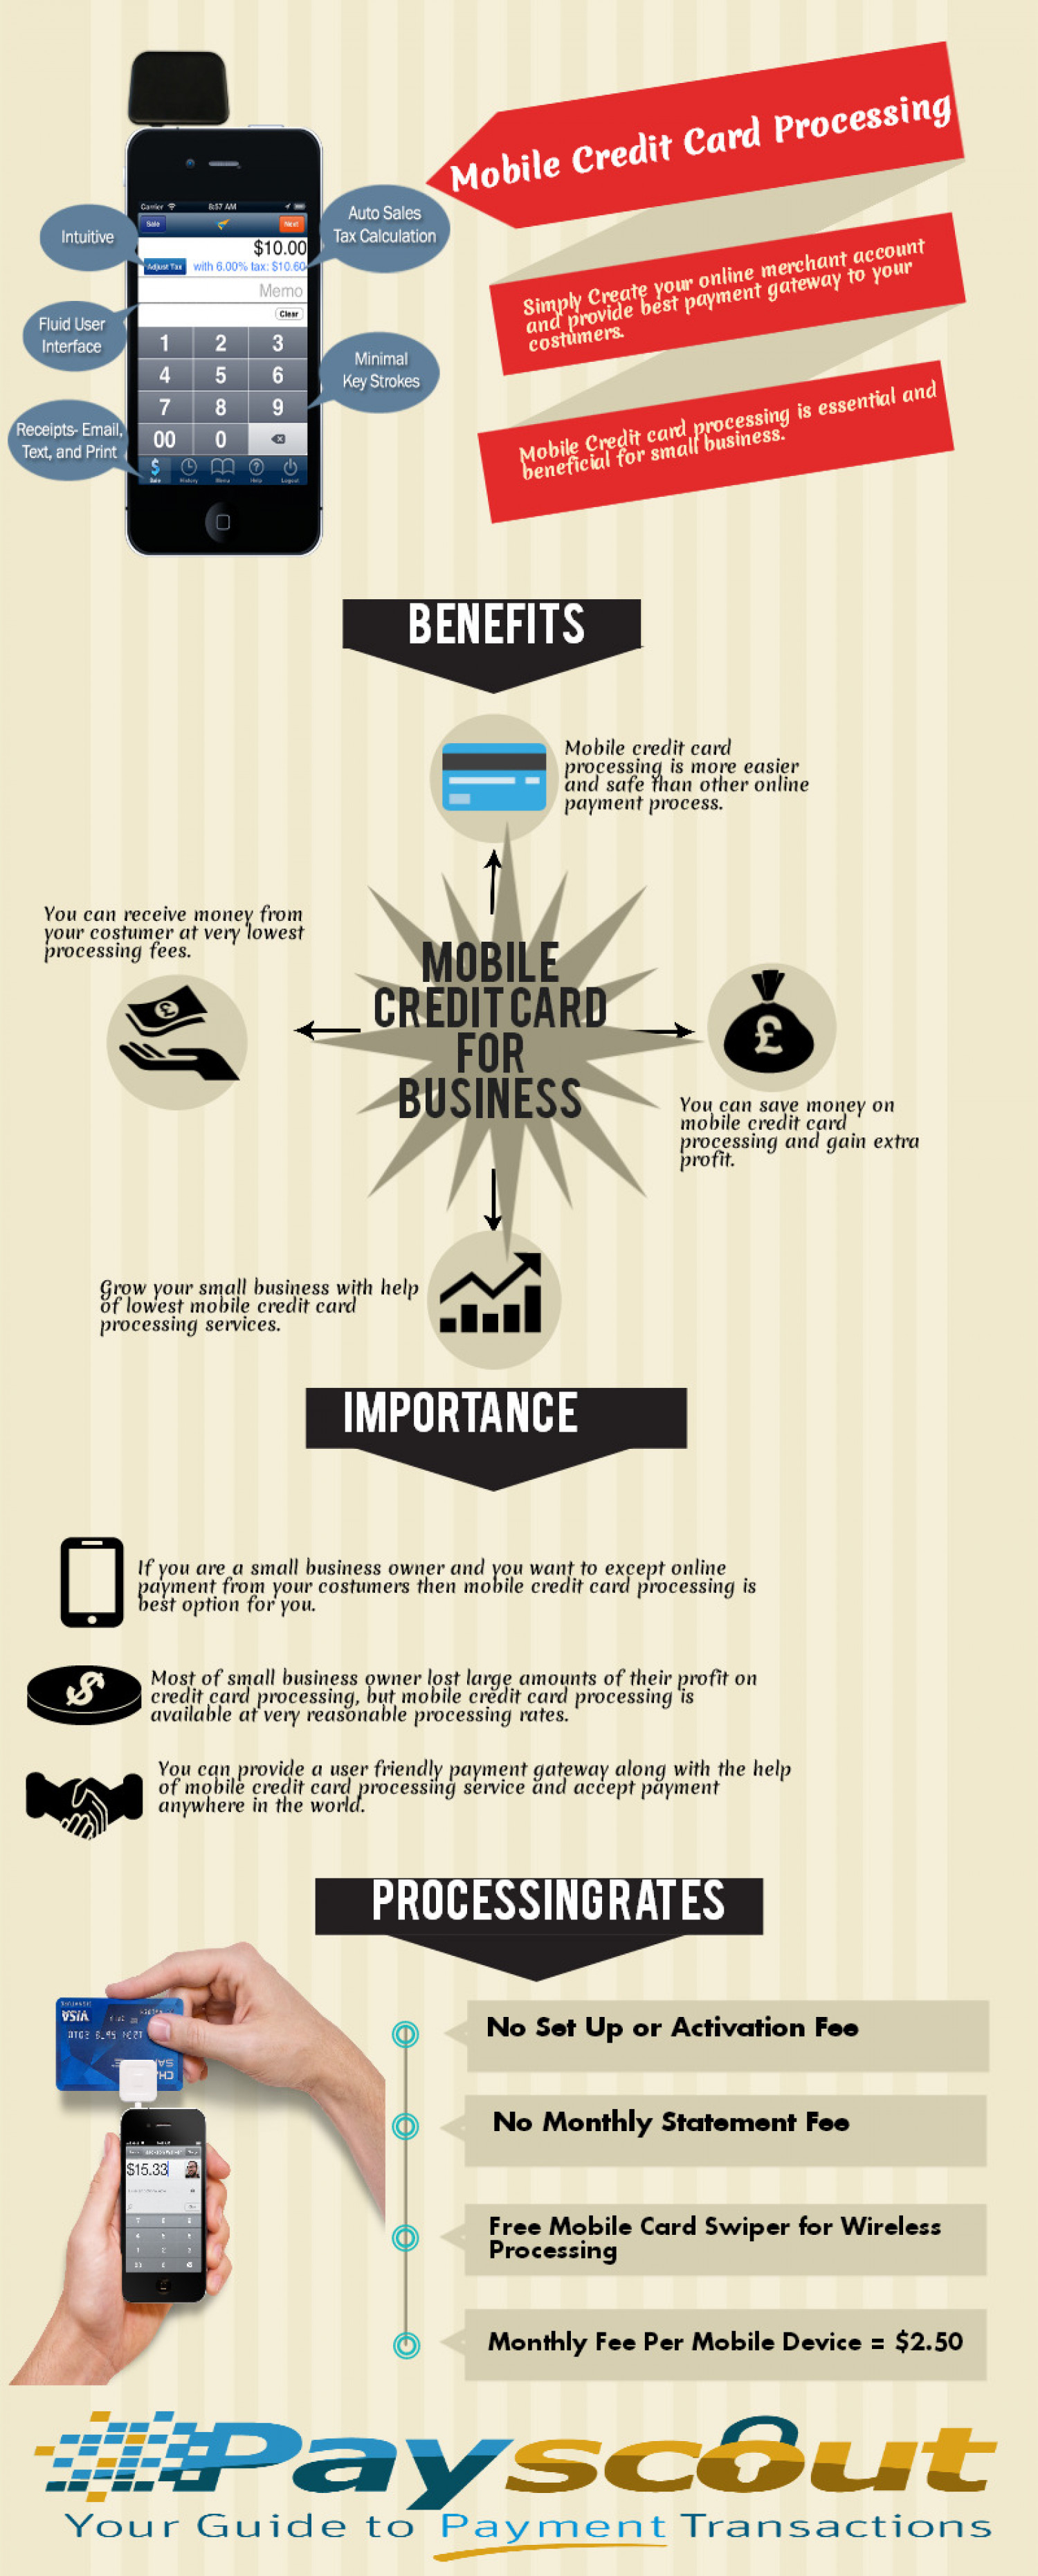 Benefits of mobile credit card processing visual benefits of mobile credit card processing infographic reheart Gallery